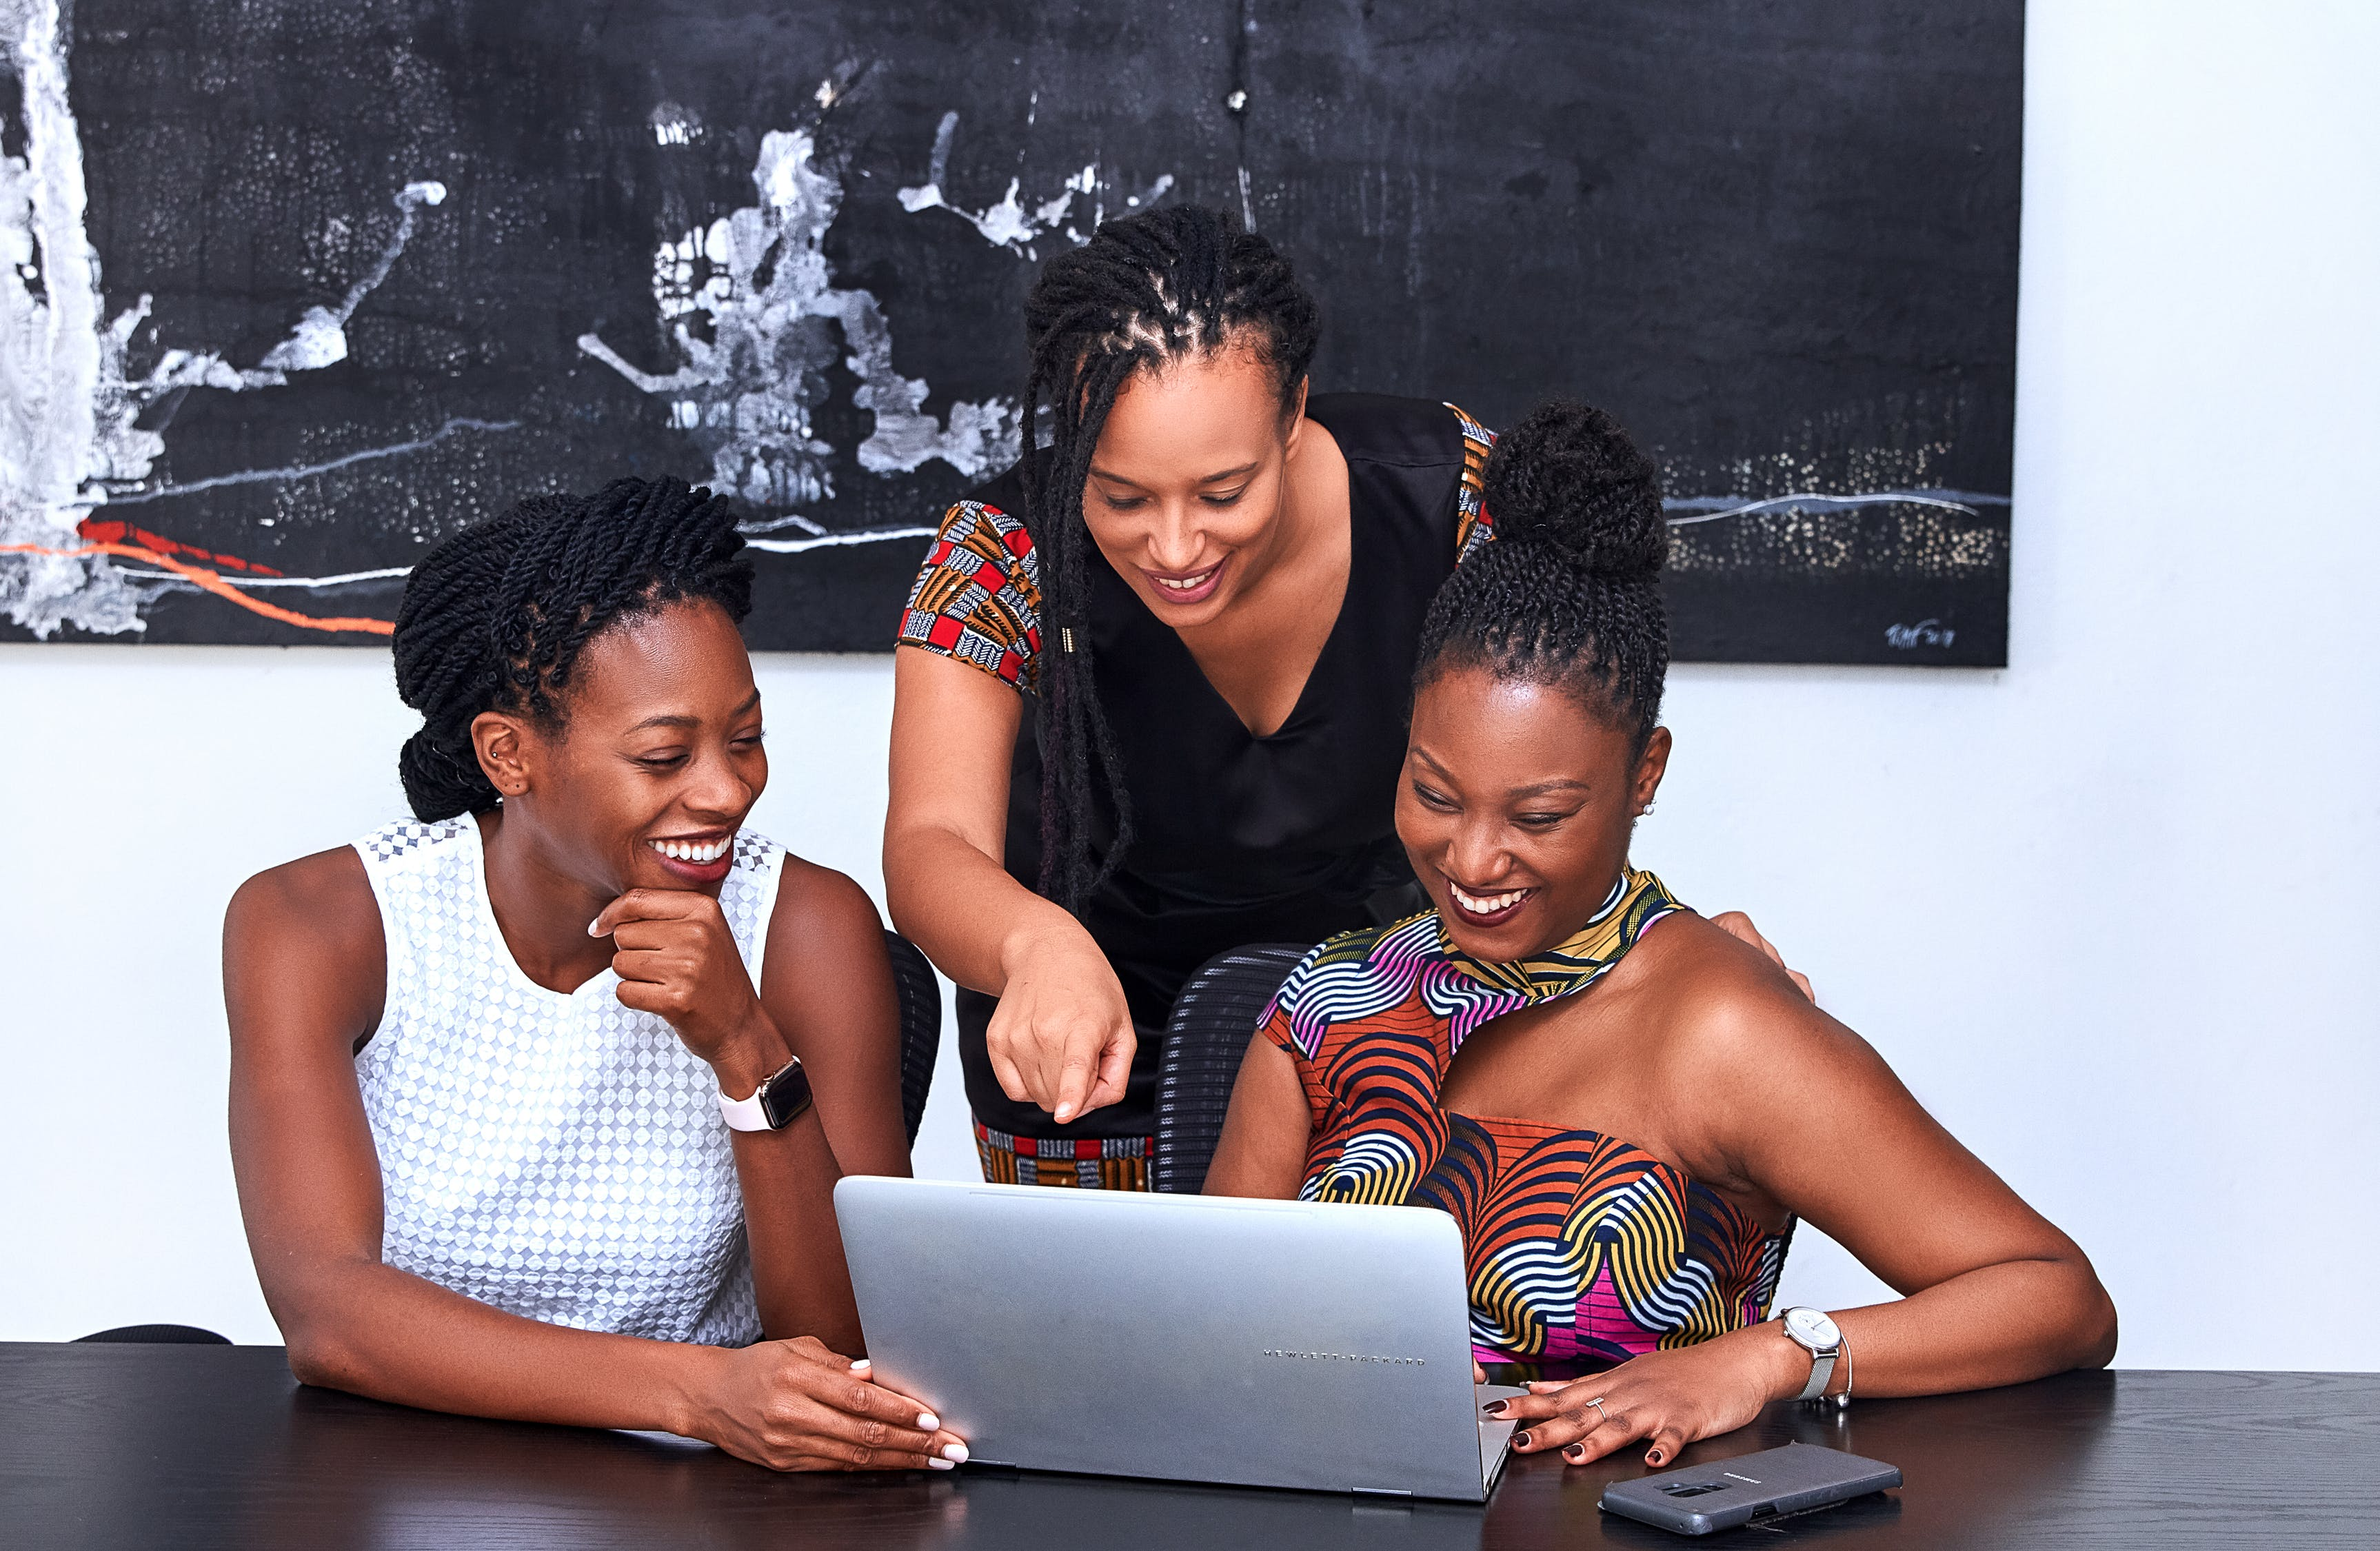 Three Black women crowded around at a laptop. They are all smiling and appear to be discussing something on the laptop screen.  Photo by PICHA Stock from Pexels